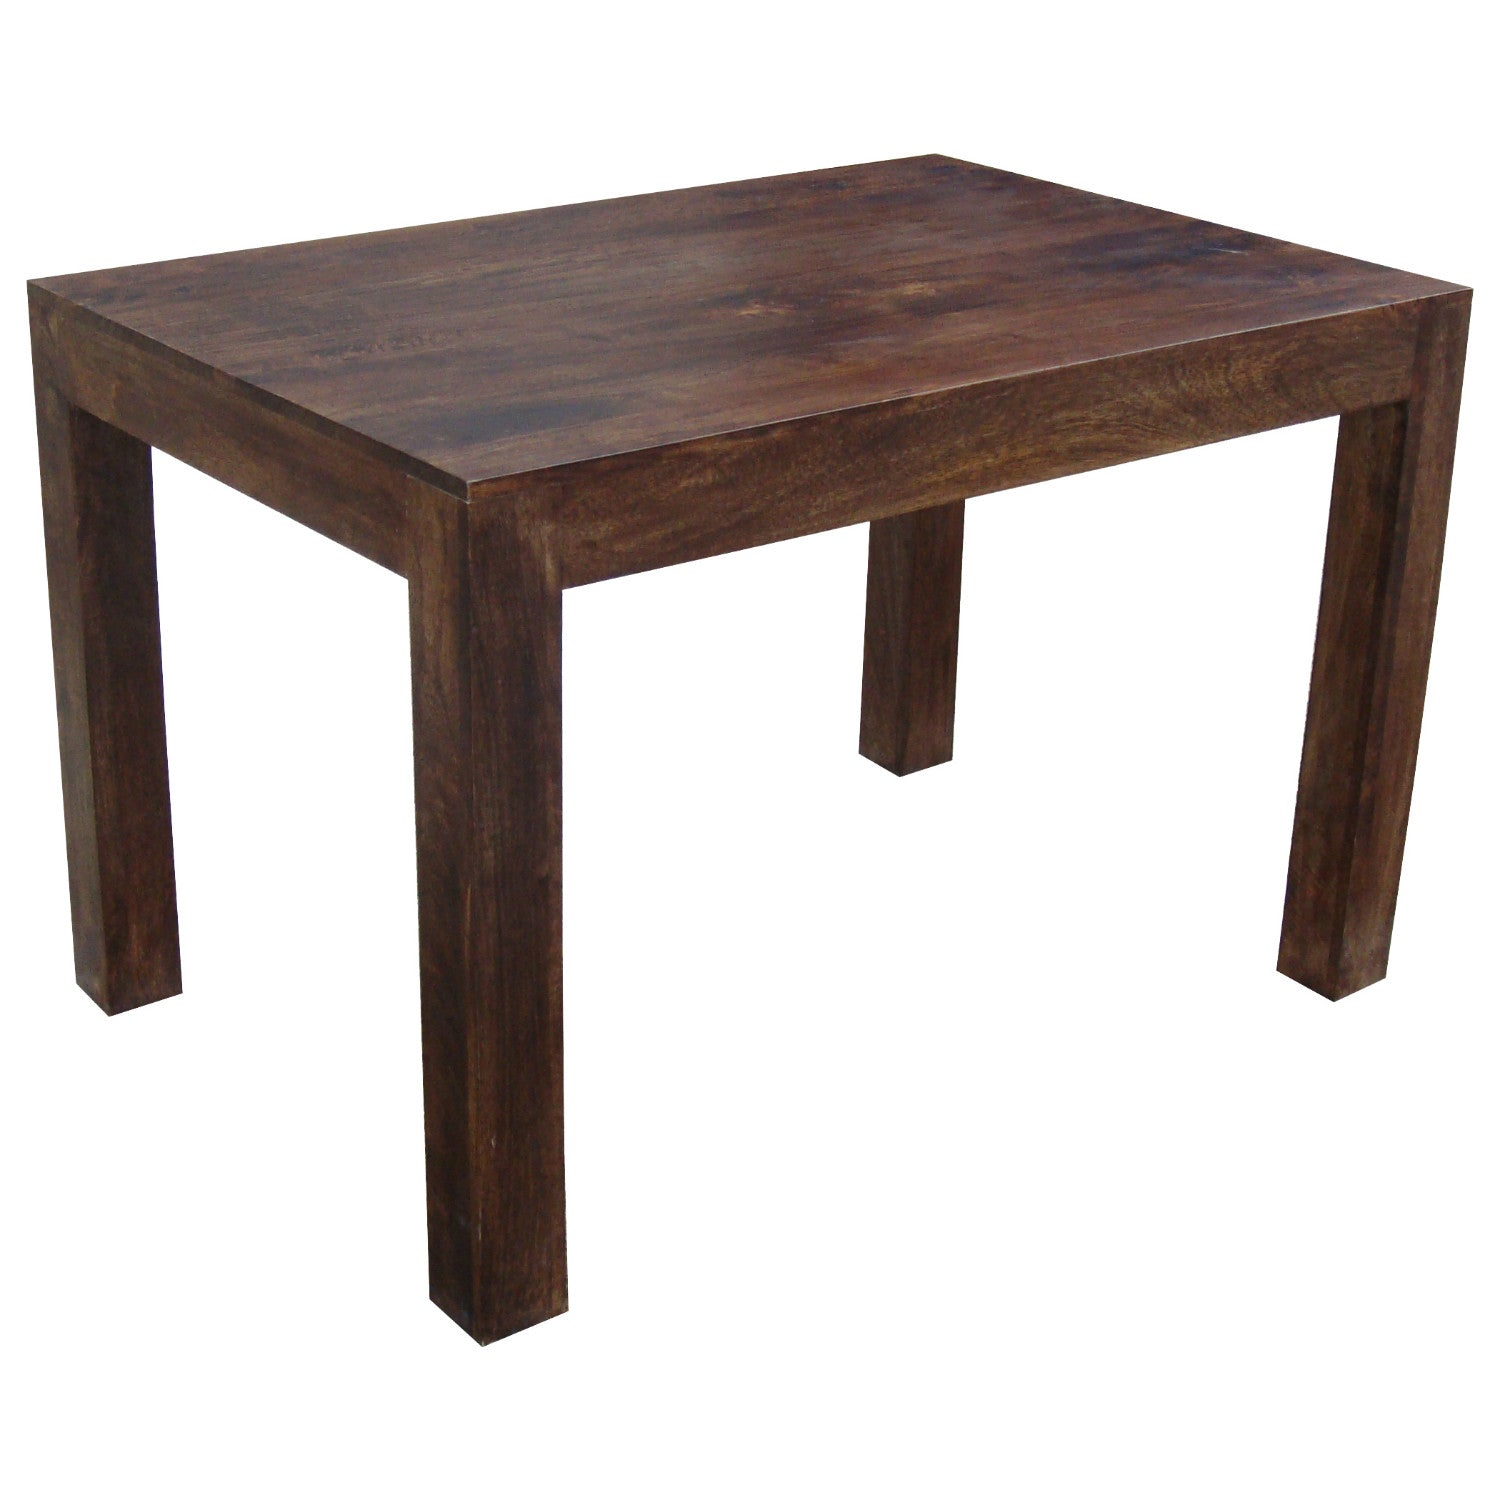 Mango wood dark 120x80 dining table quarter solid wood for Table 120x80